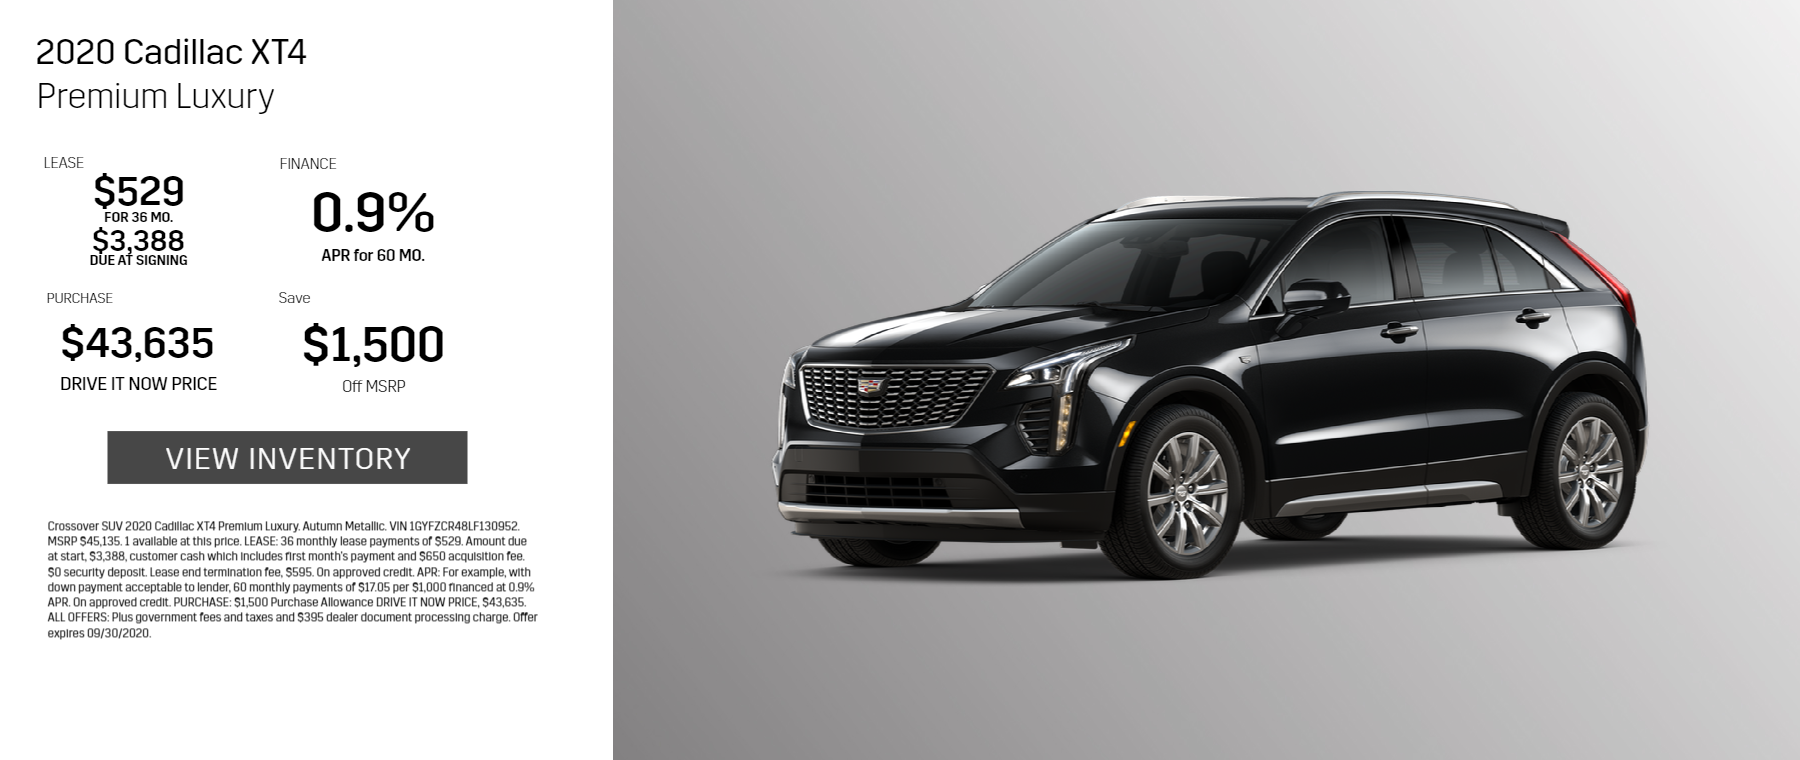 WF38503_website_1800 x 760_2020_Cadillac_XT4_Premium Luxury_4